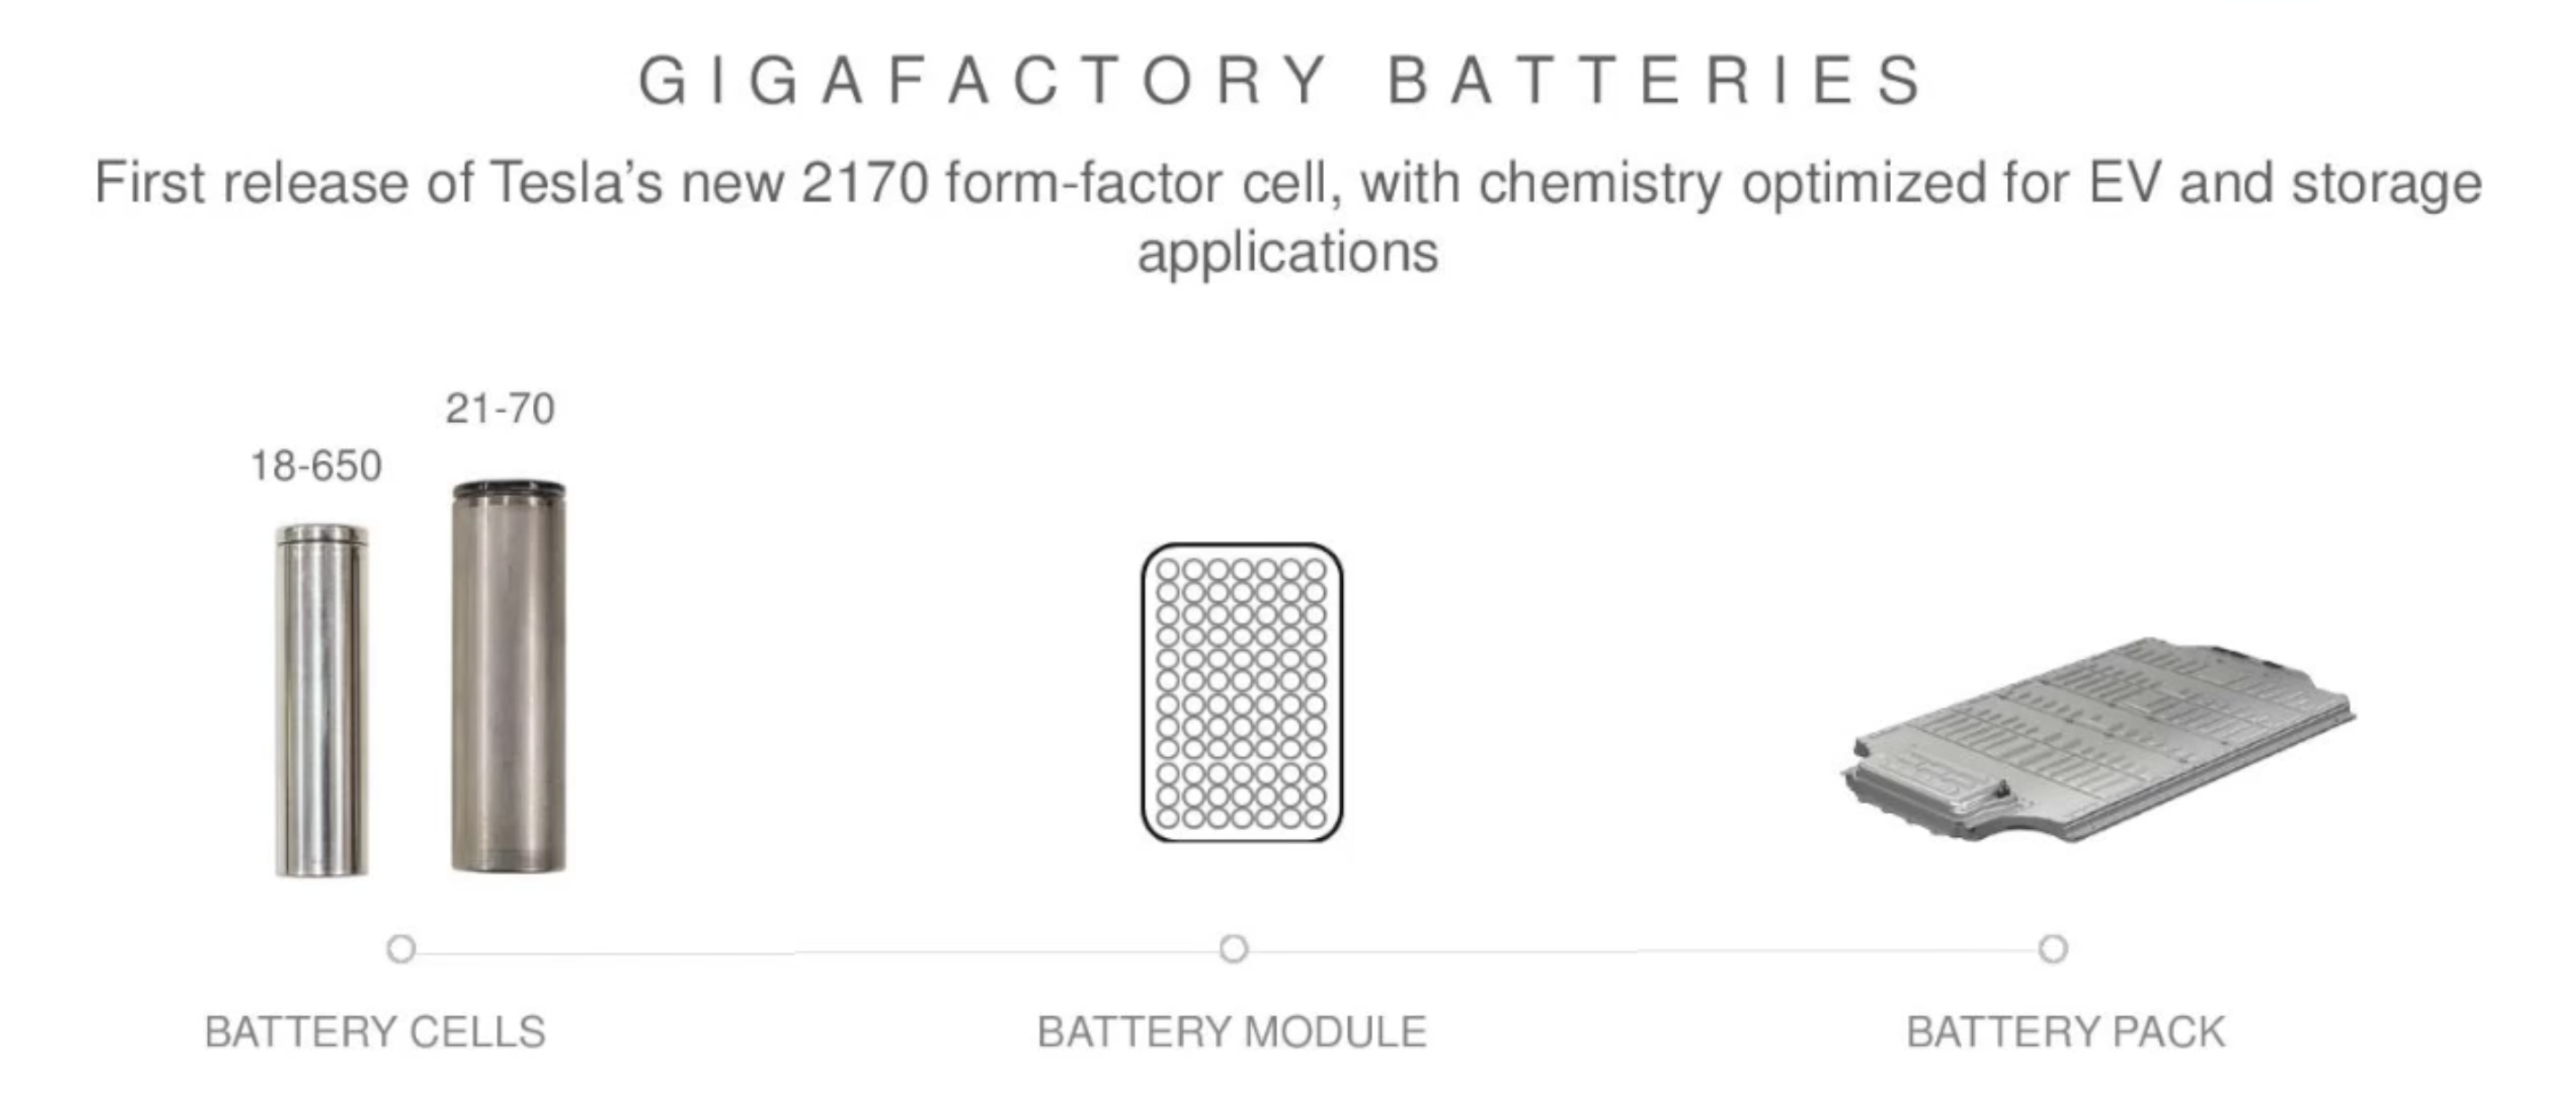 Battery Cell 2170 >> Tesla is starting Model 3 battery cell production at Gigafactory 1 'right now' - Electrek